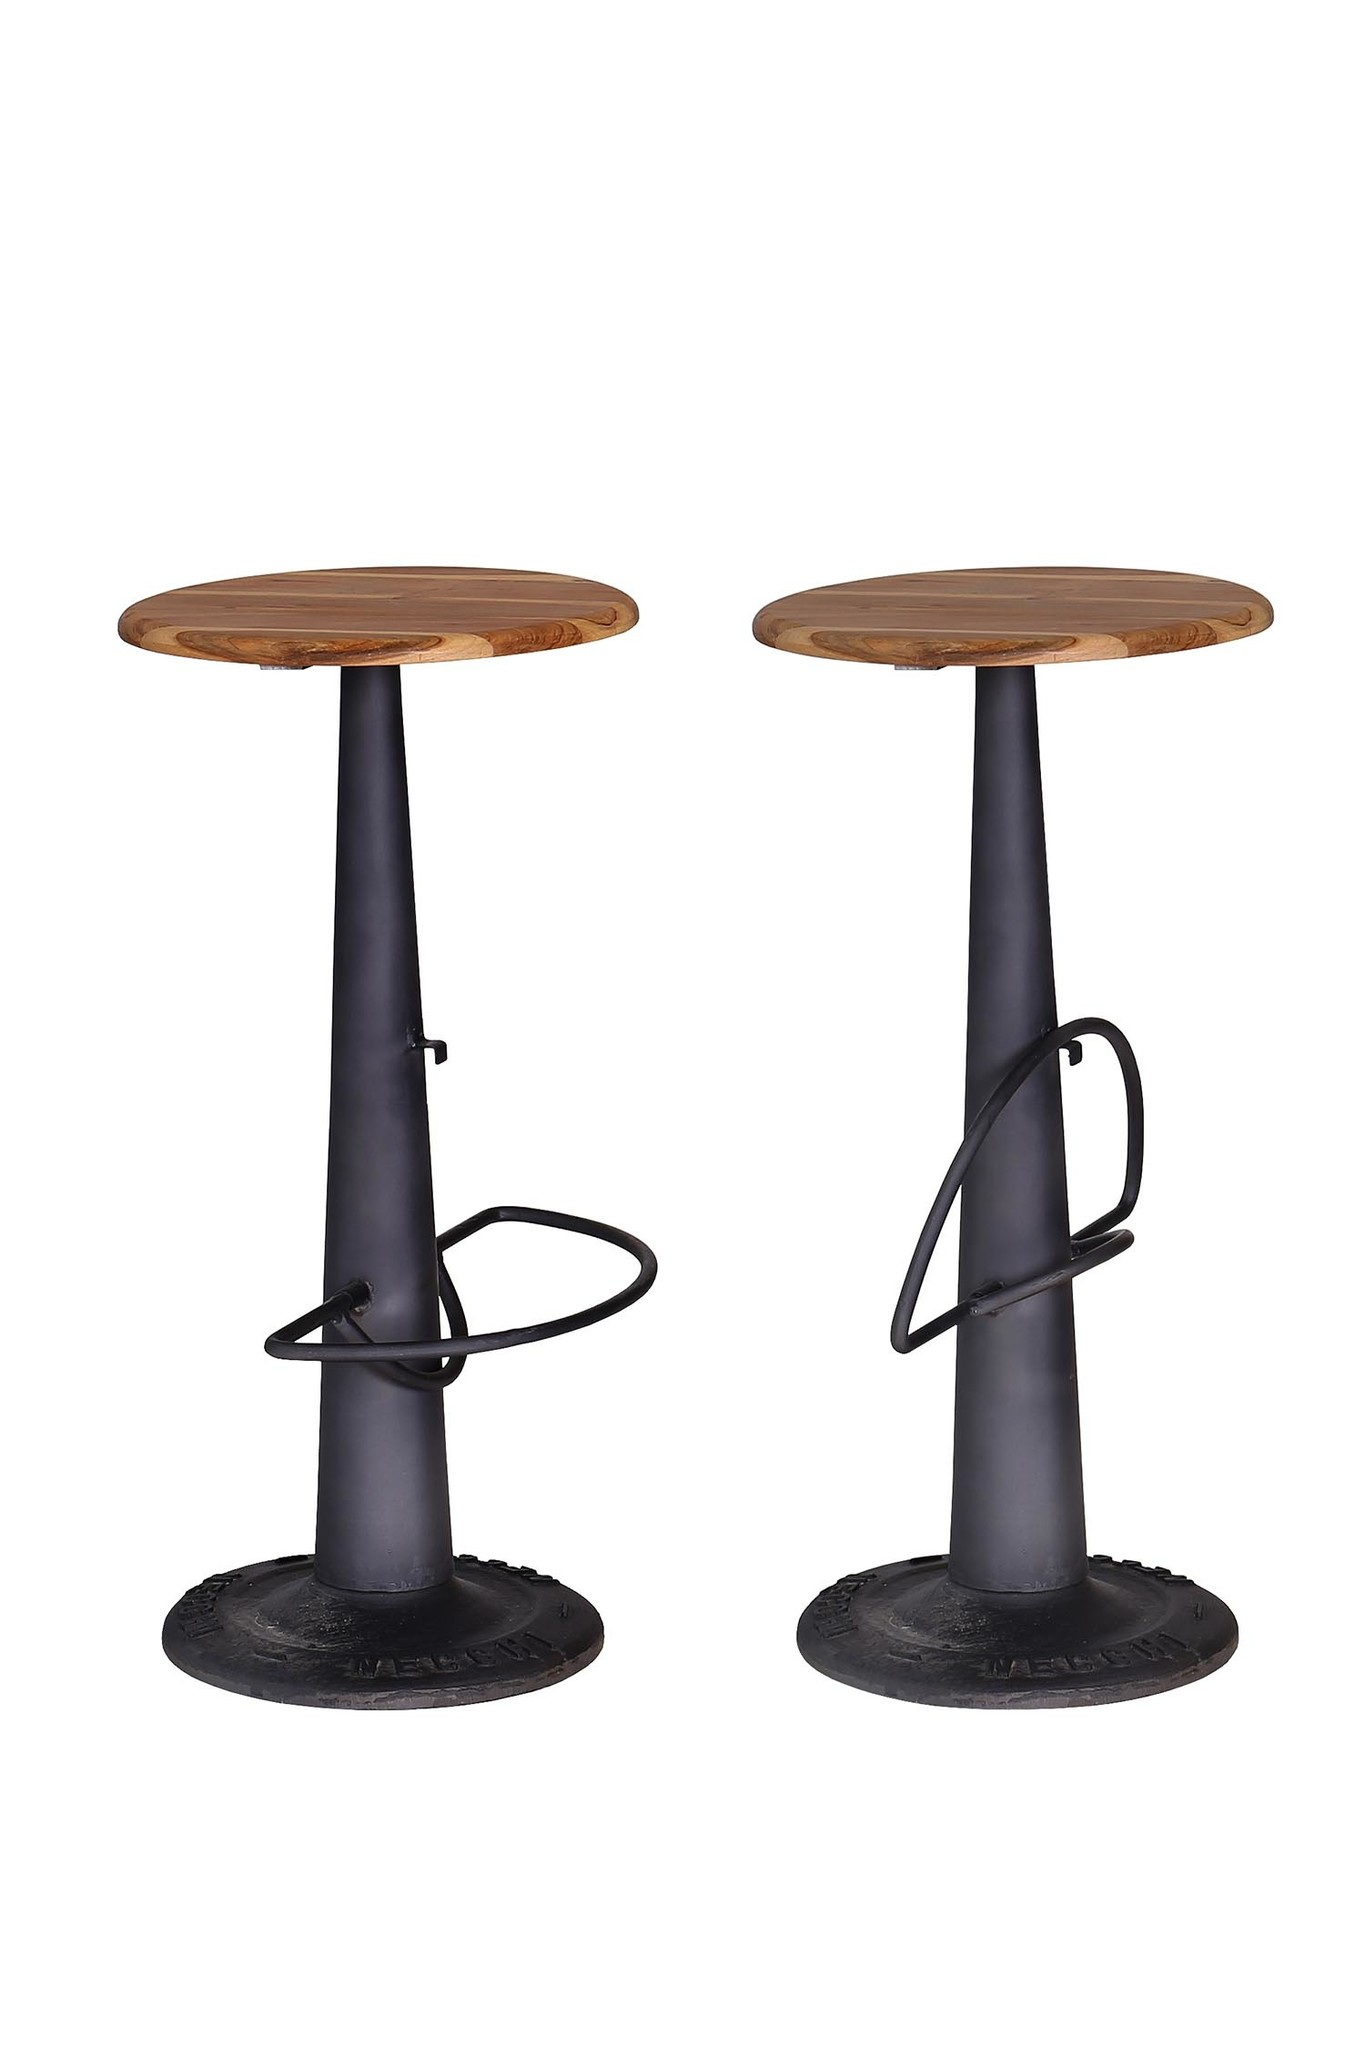 Besp-Oak Industrial Style Bar Stool With Footrest